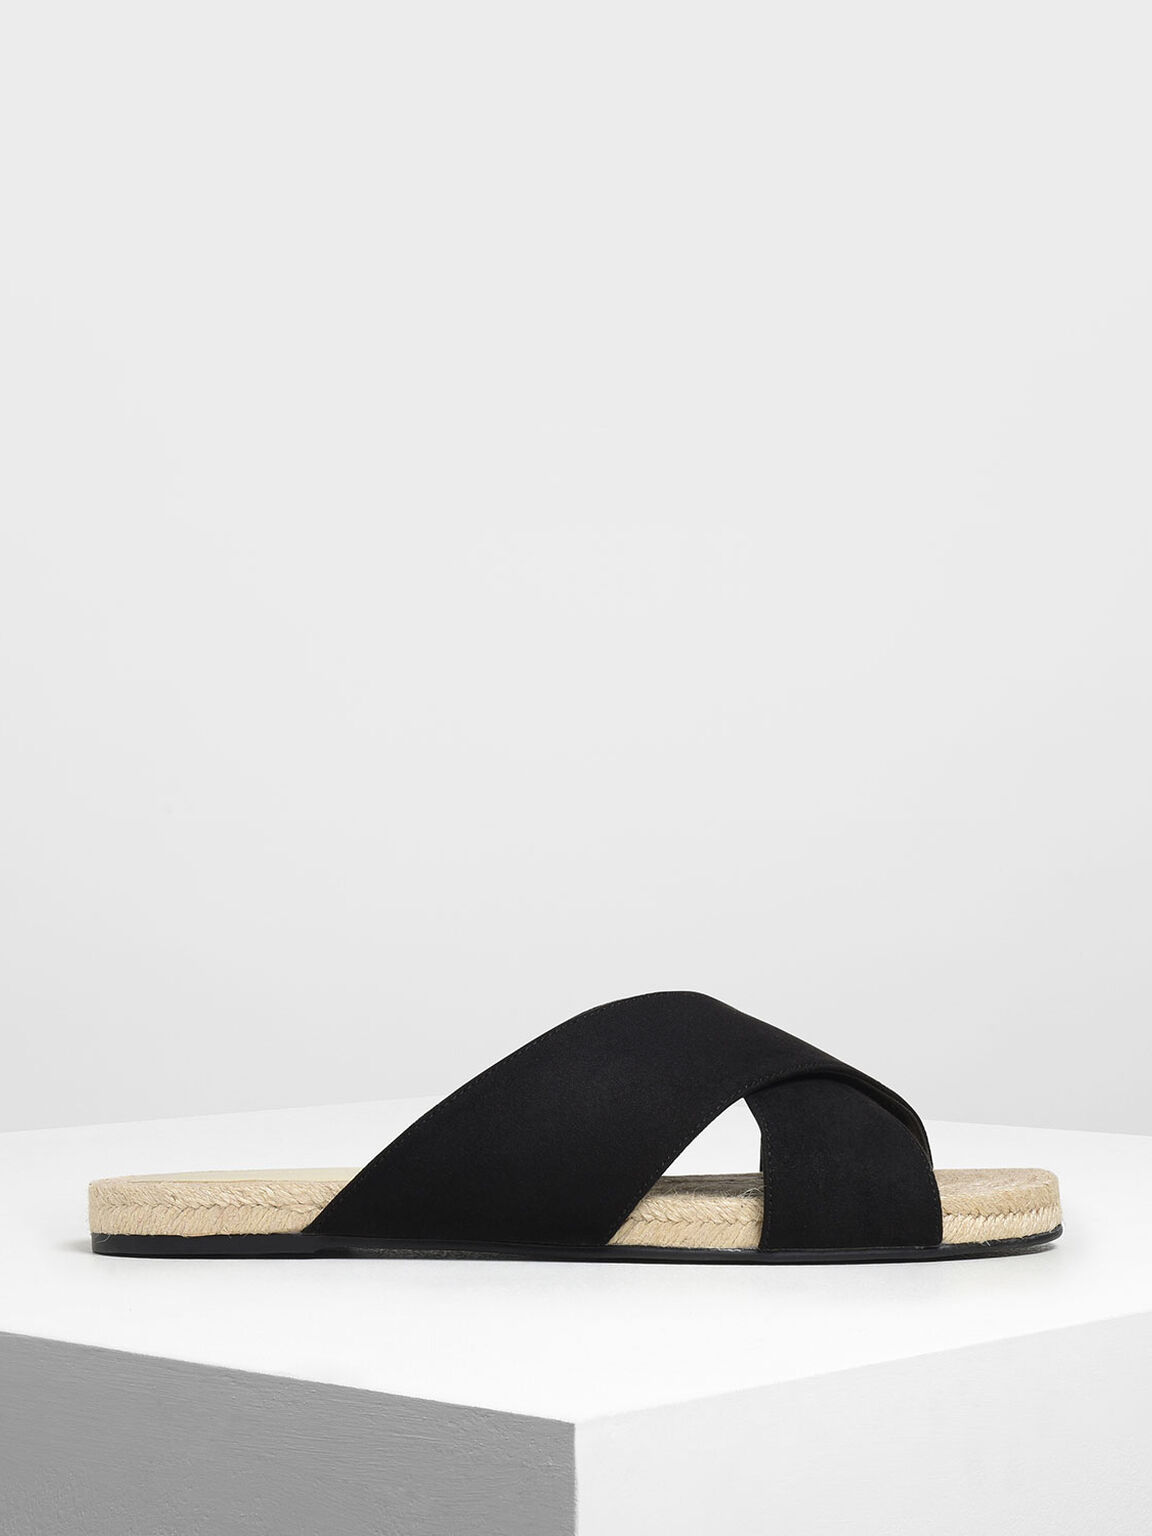 Criss Cross Slide Sandals, Black, hi-res